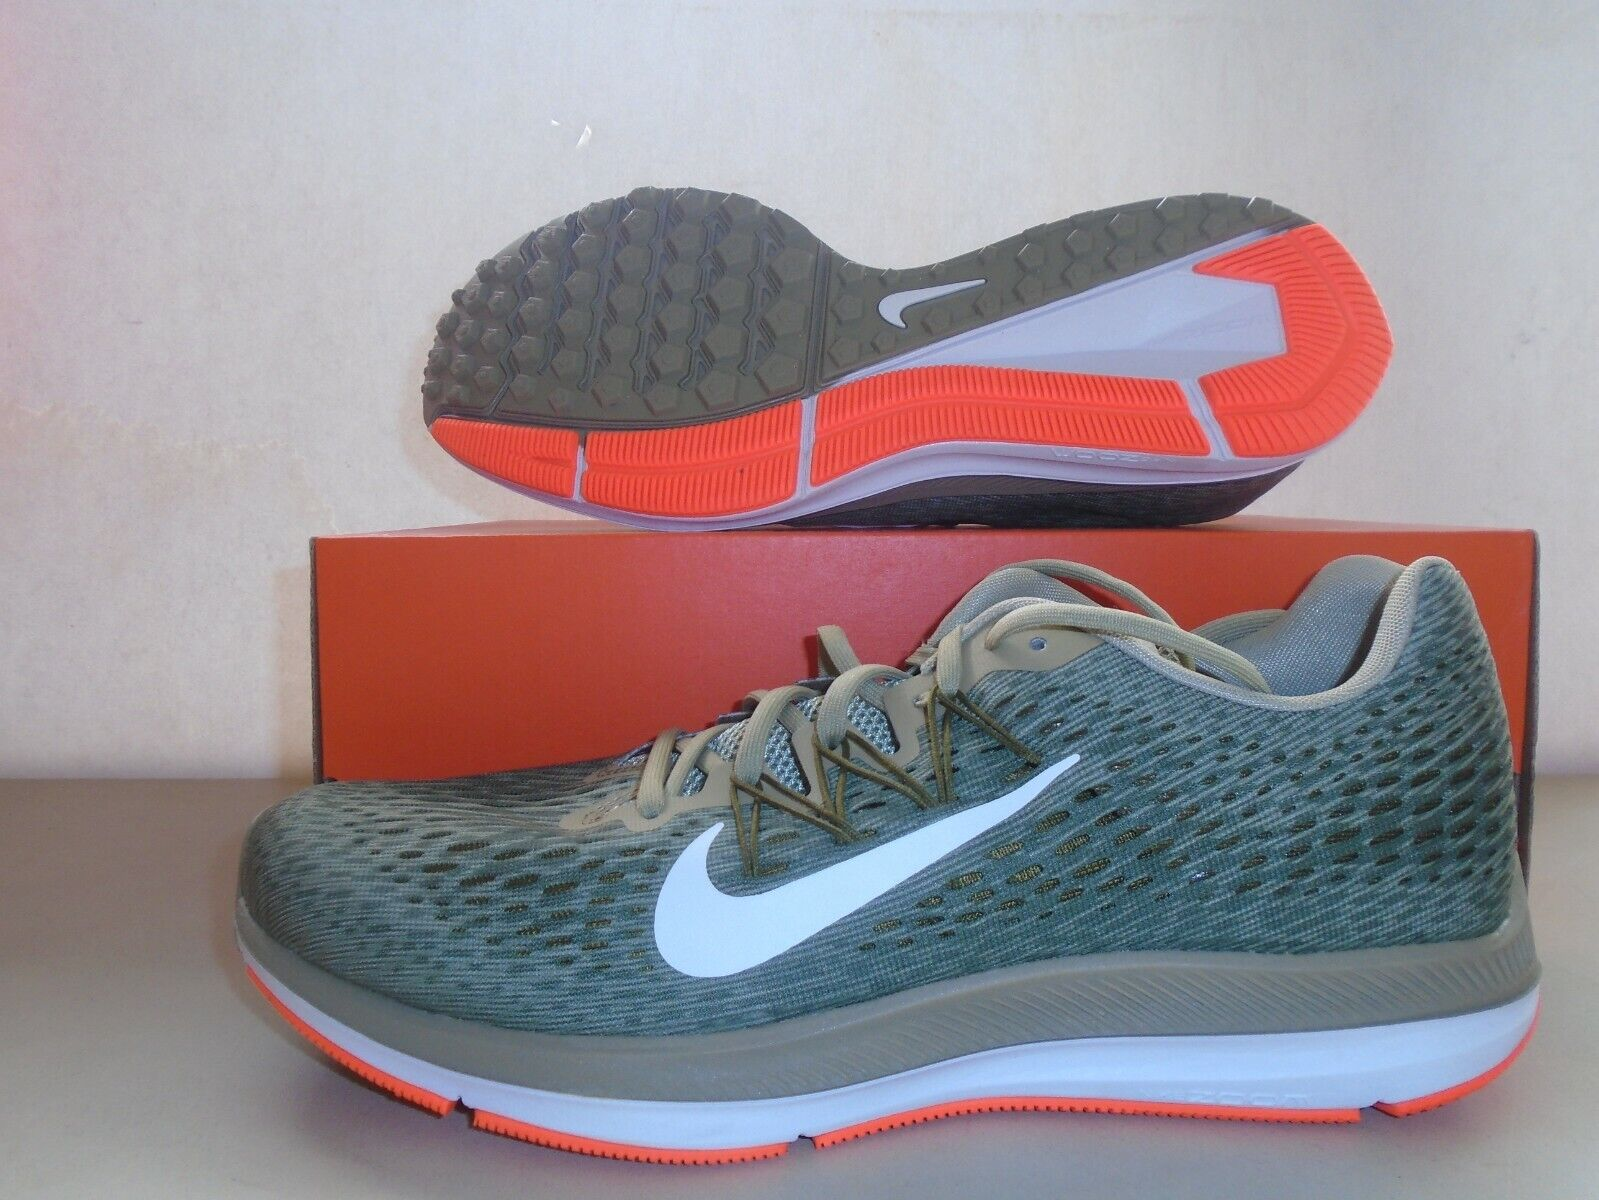 new zoom winflo 5 neutral olive running